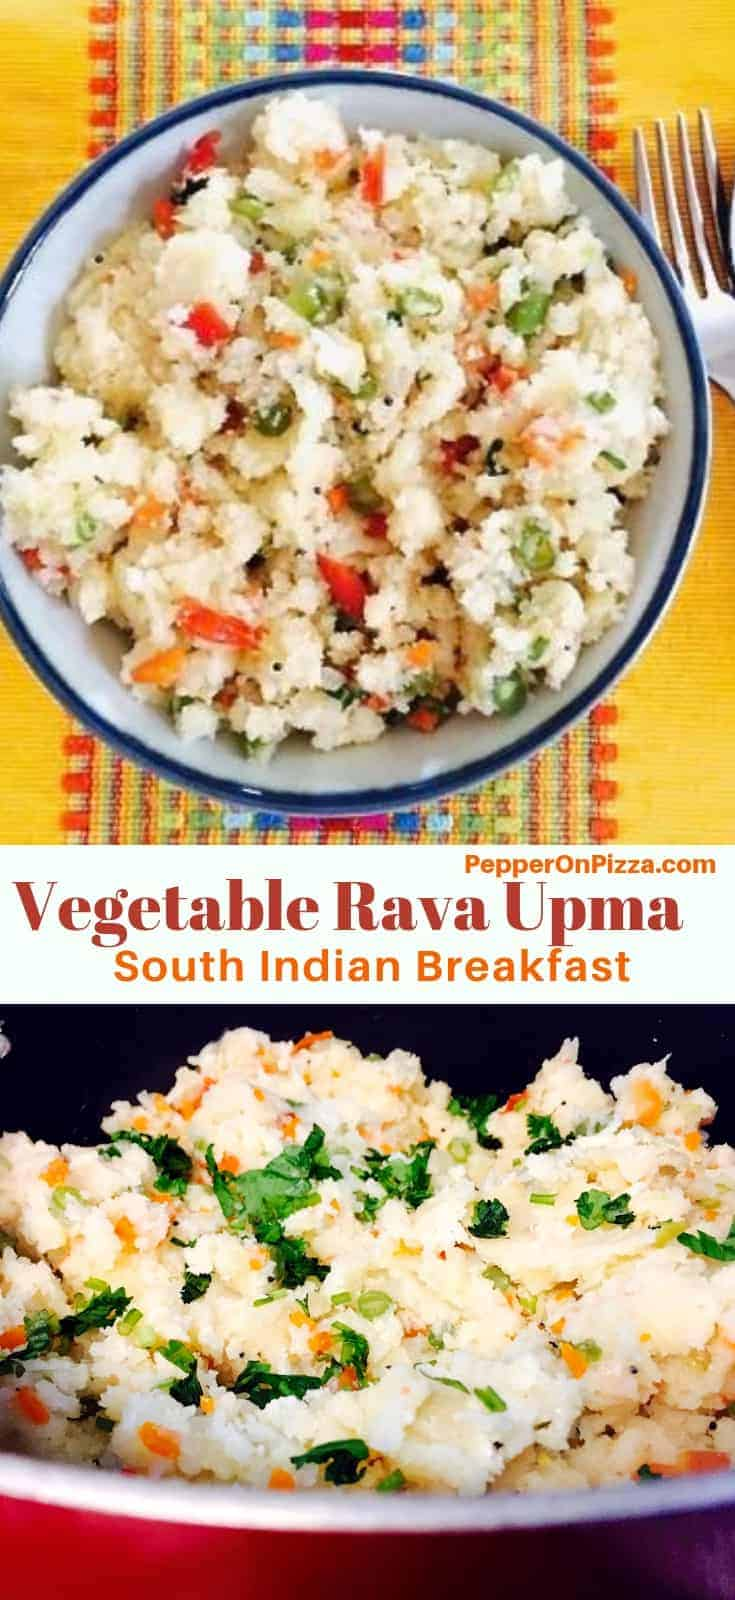 Vegetable Rava Upma. An easy, tasty South Indian breakfast. Semolina flour/sooji is roasted and cooked with a variety of vegetables and a tempering of mustard seeds, chillies and curry leaves. Omit ghee for a vegan version